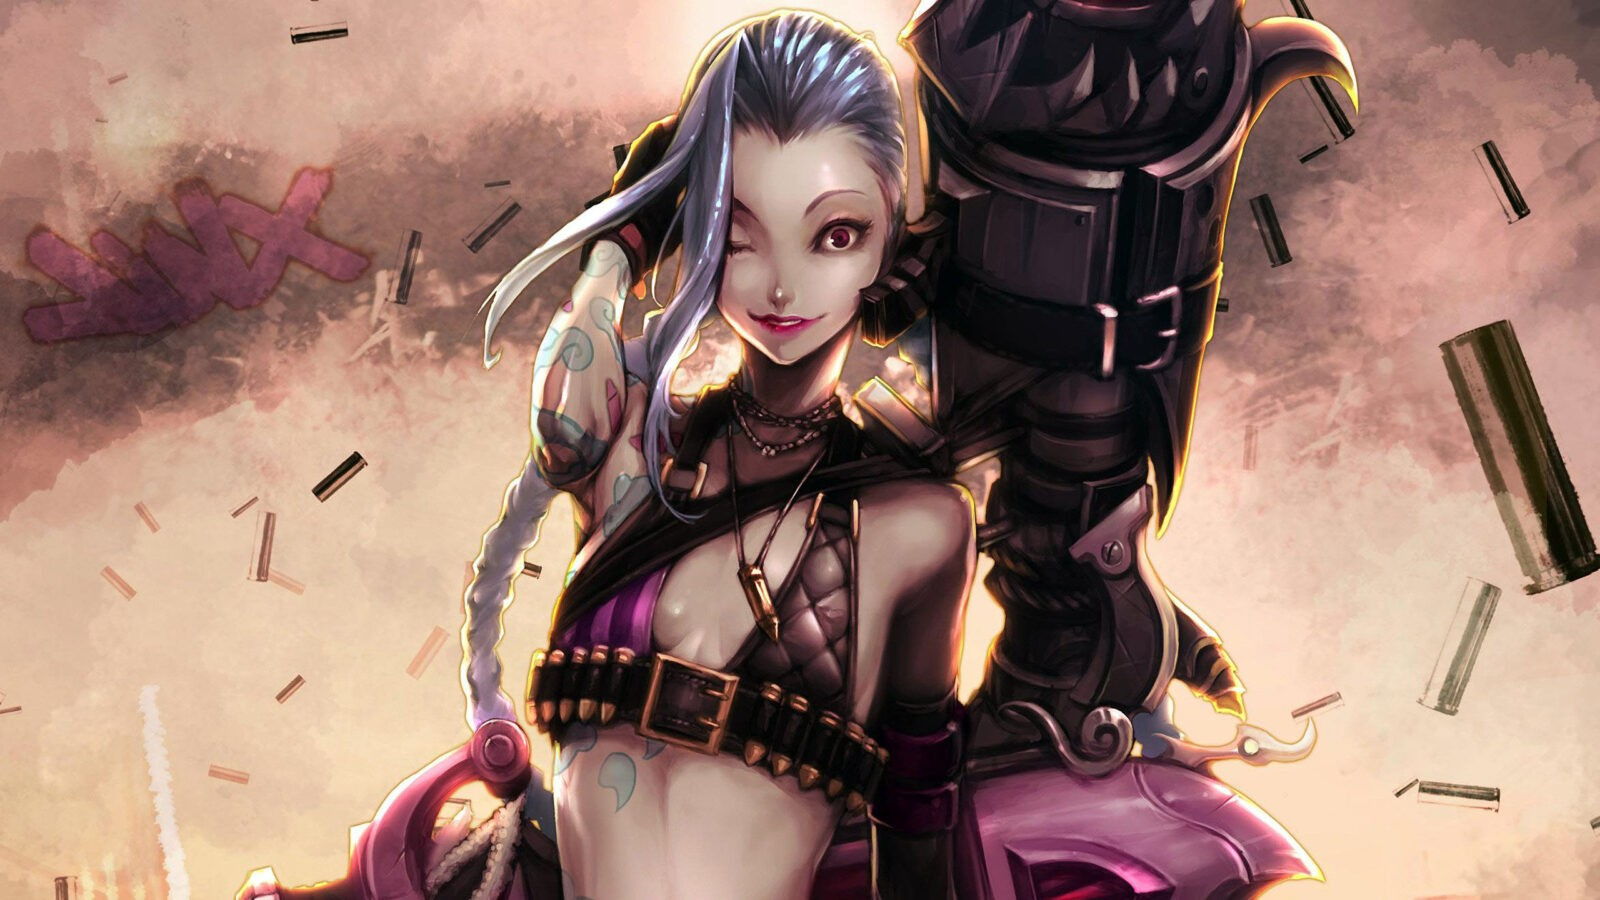 League of Legends Jinx full HD desktop images